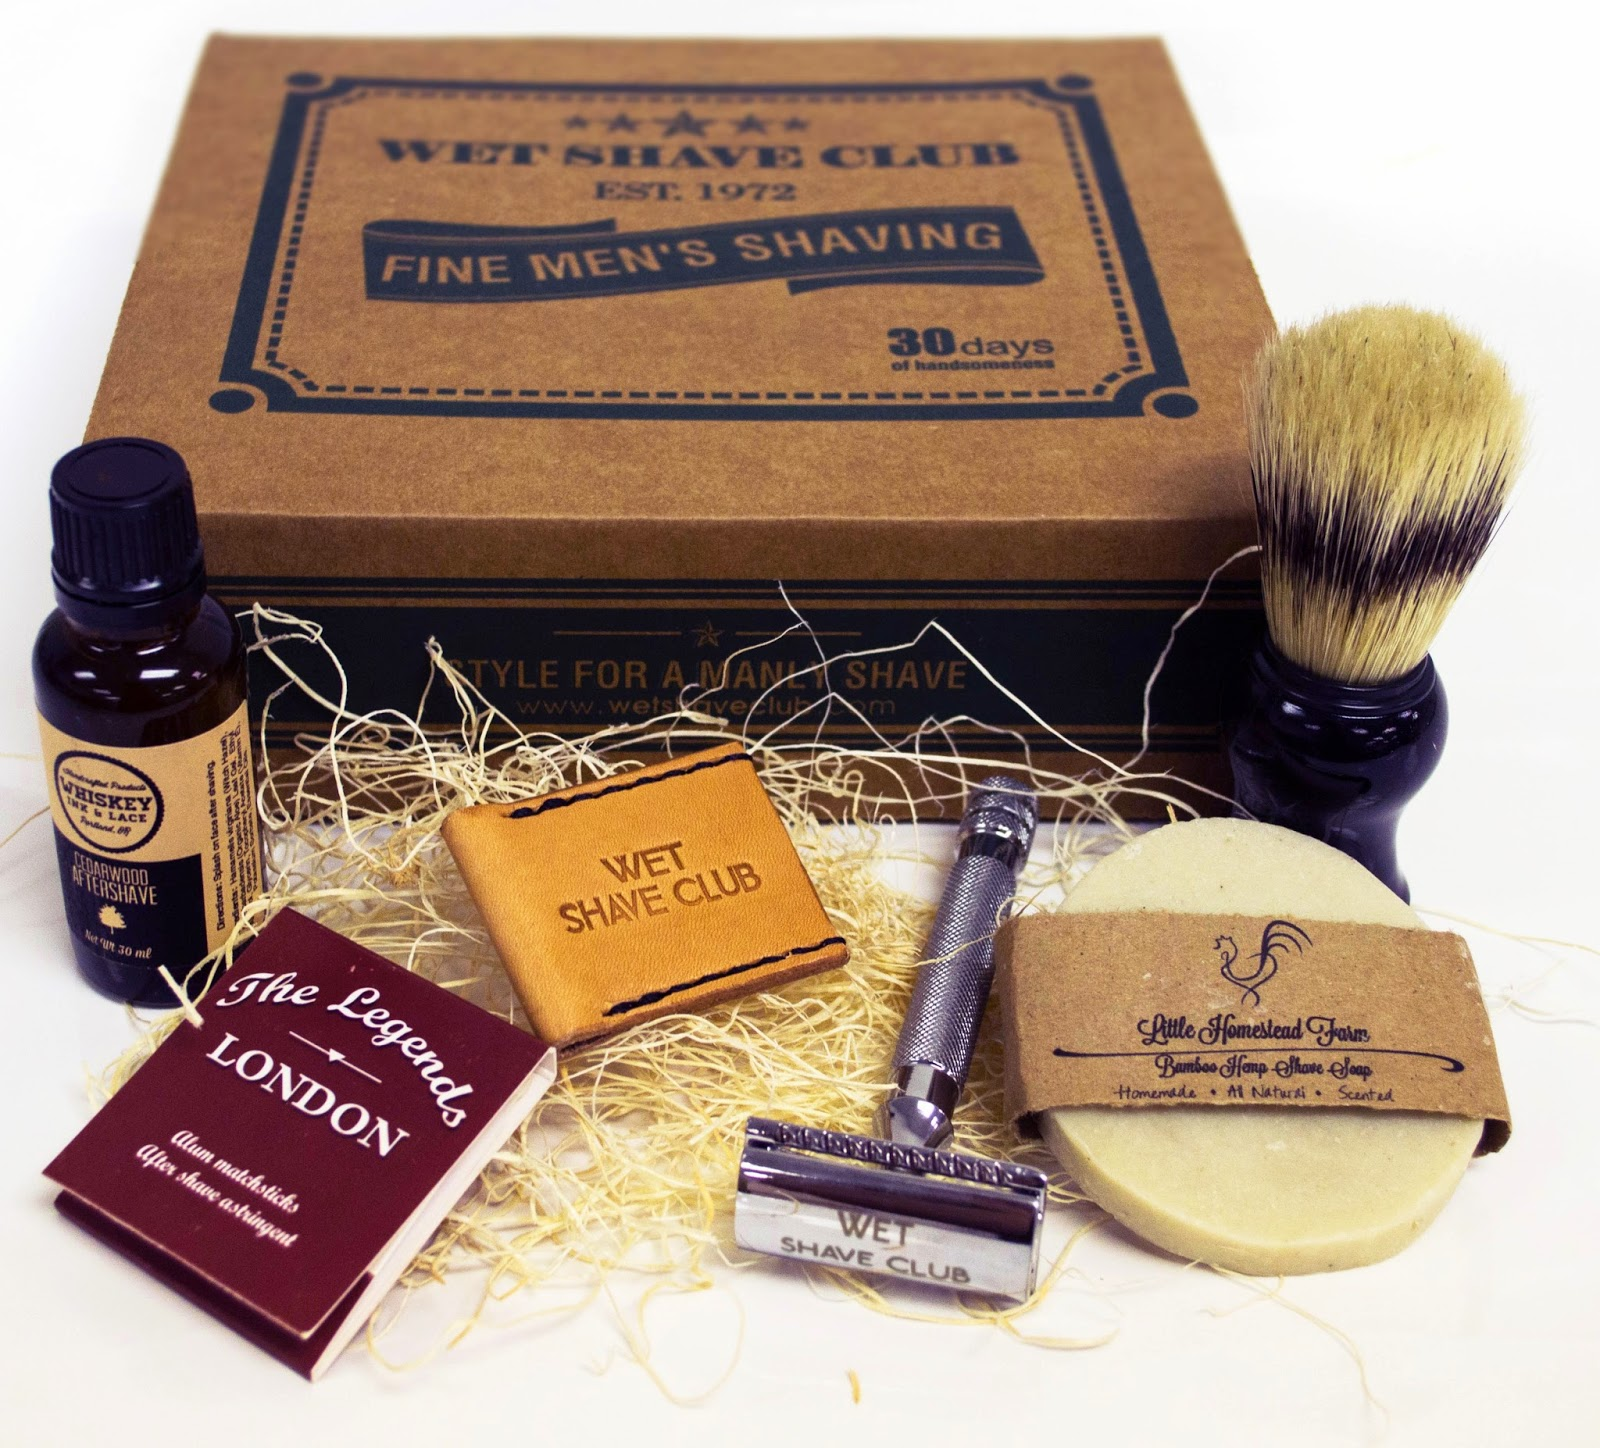 http://stacytilton.blogspot.com/2014/11/holiday-gift-guide-wet-shave-club.html